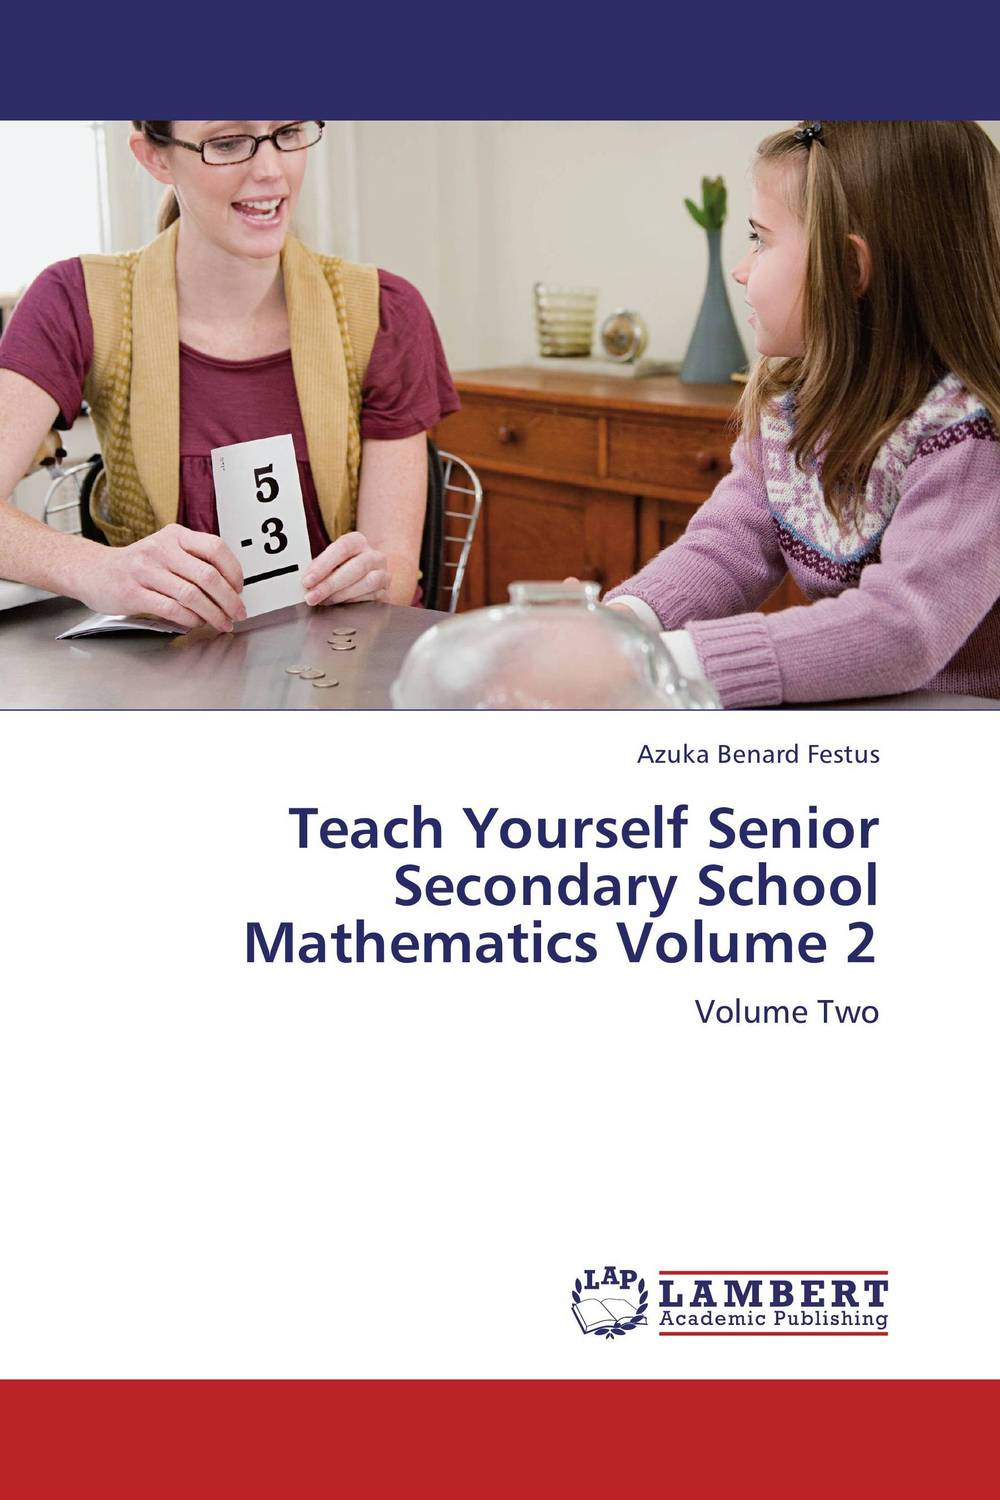 Teach Yourself Senior Secondary School Mathematics Volume 2 teach yourself change and crisis management